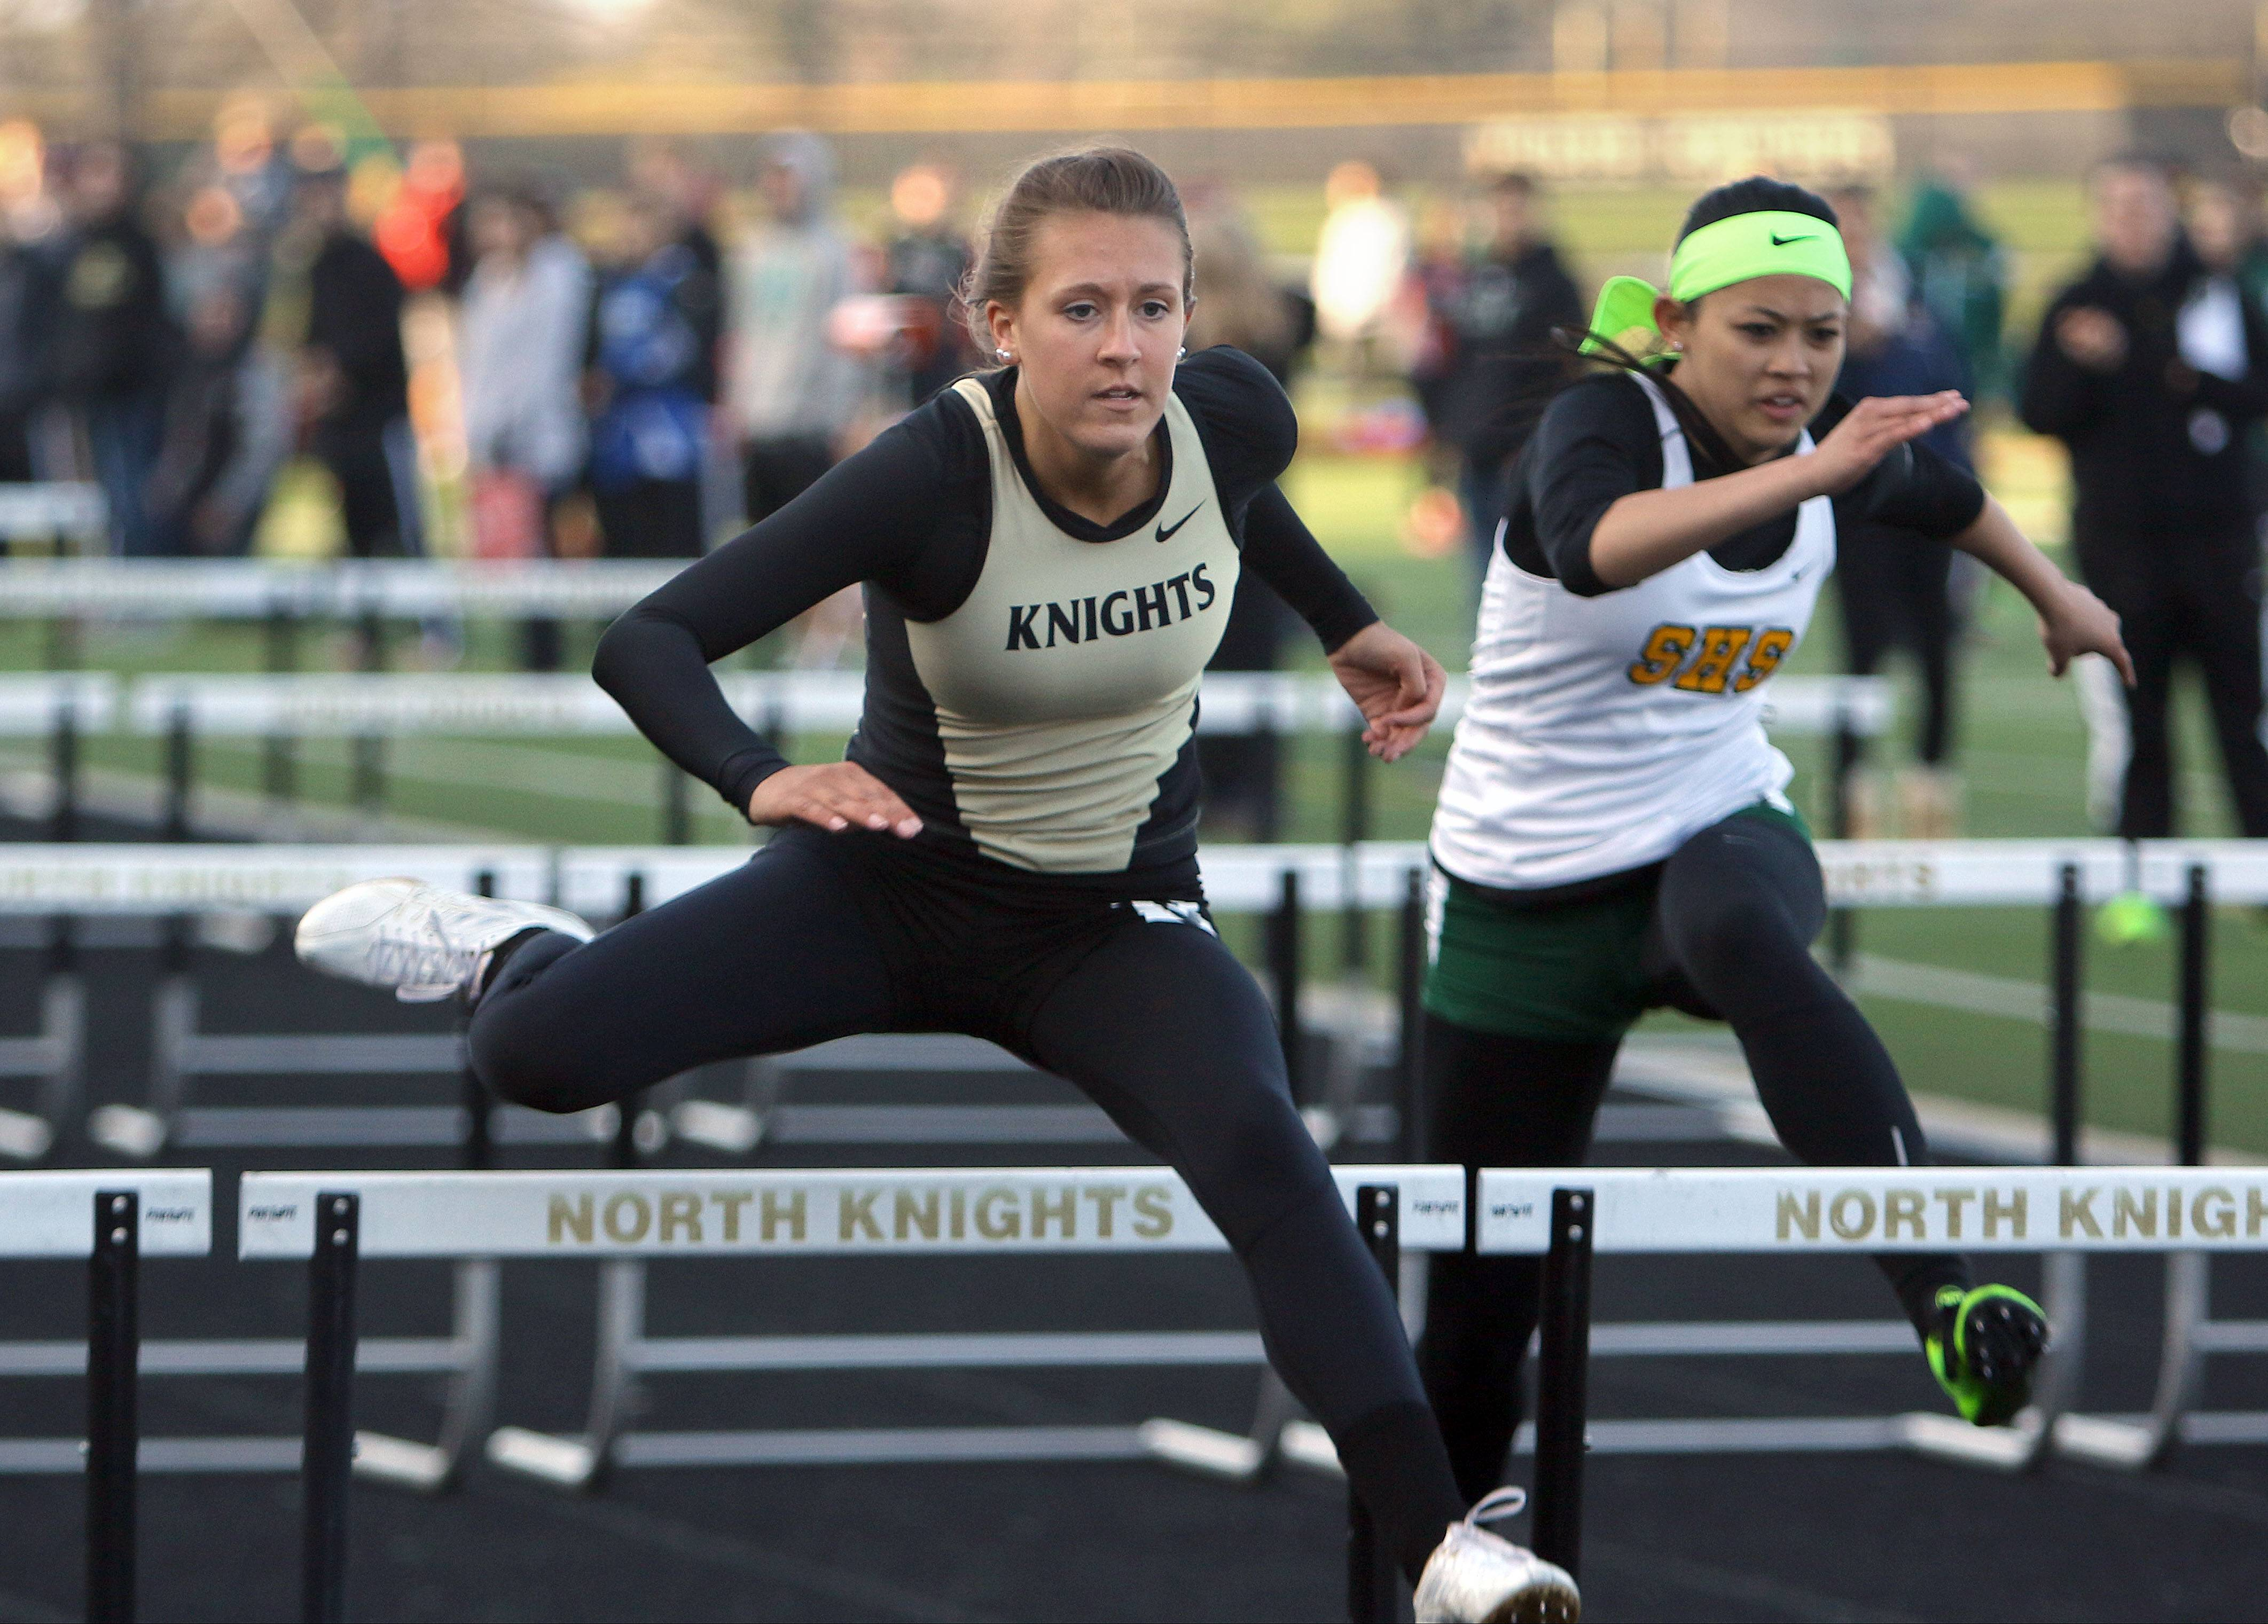 Grayslake North's Allison O'Connell competes in the 100-meter hurdles during the Lake County meet Friday at Grayslake North High School.